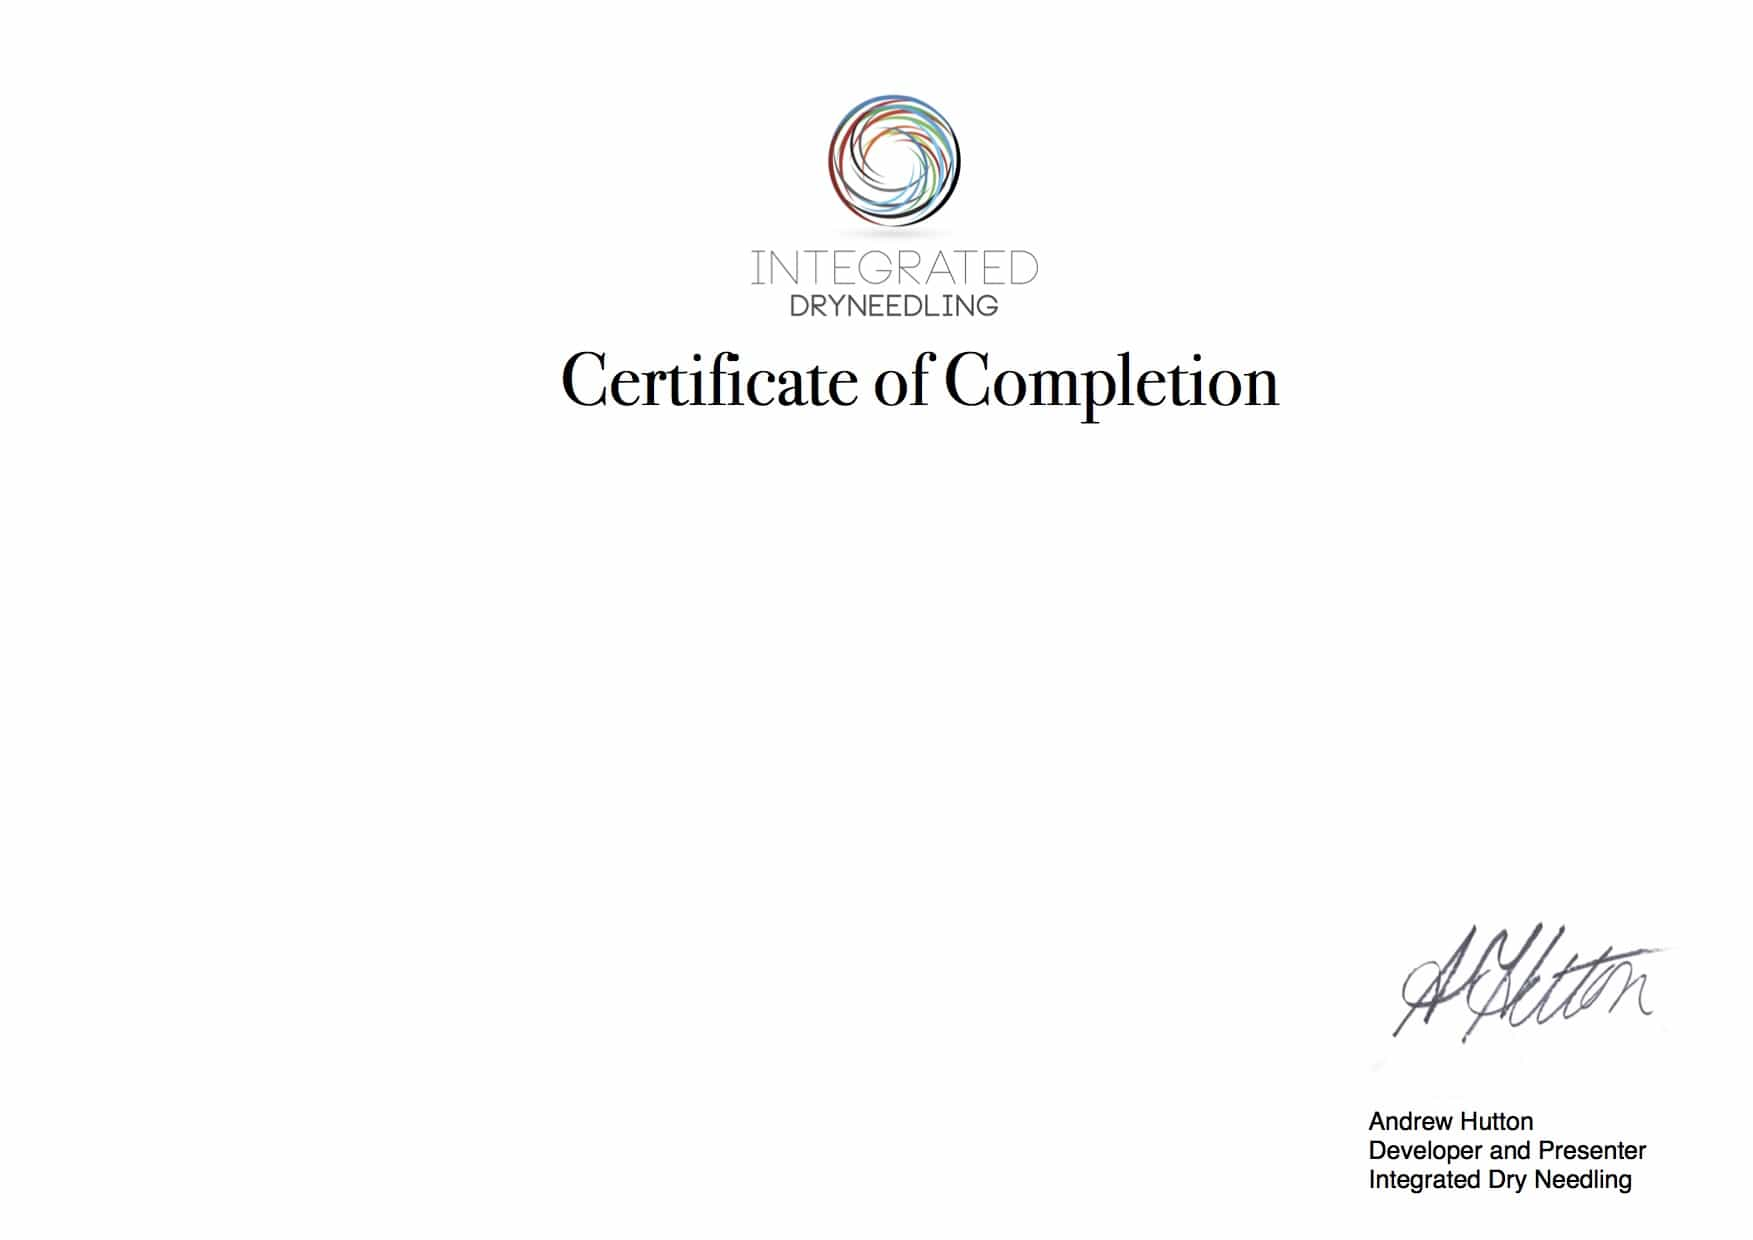 Update certificate images any certificate example ideas guidelines for safe practice update certificate integrated dry guidelines for safe practice update certificate 1betcityfo images 1betcityfo Images